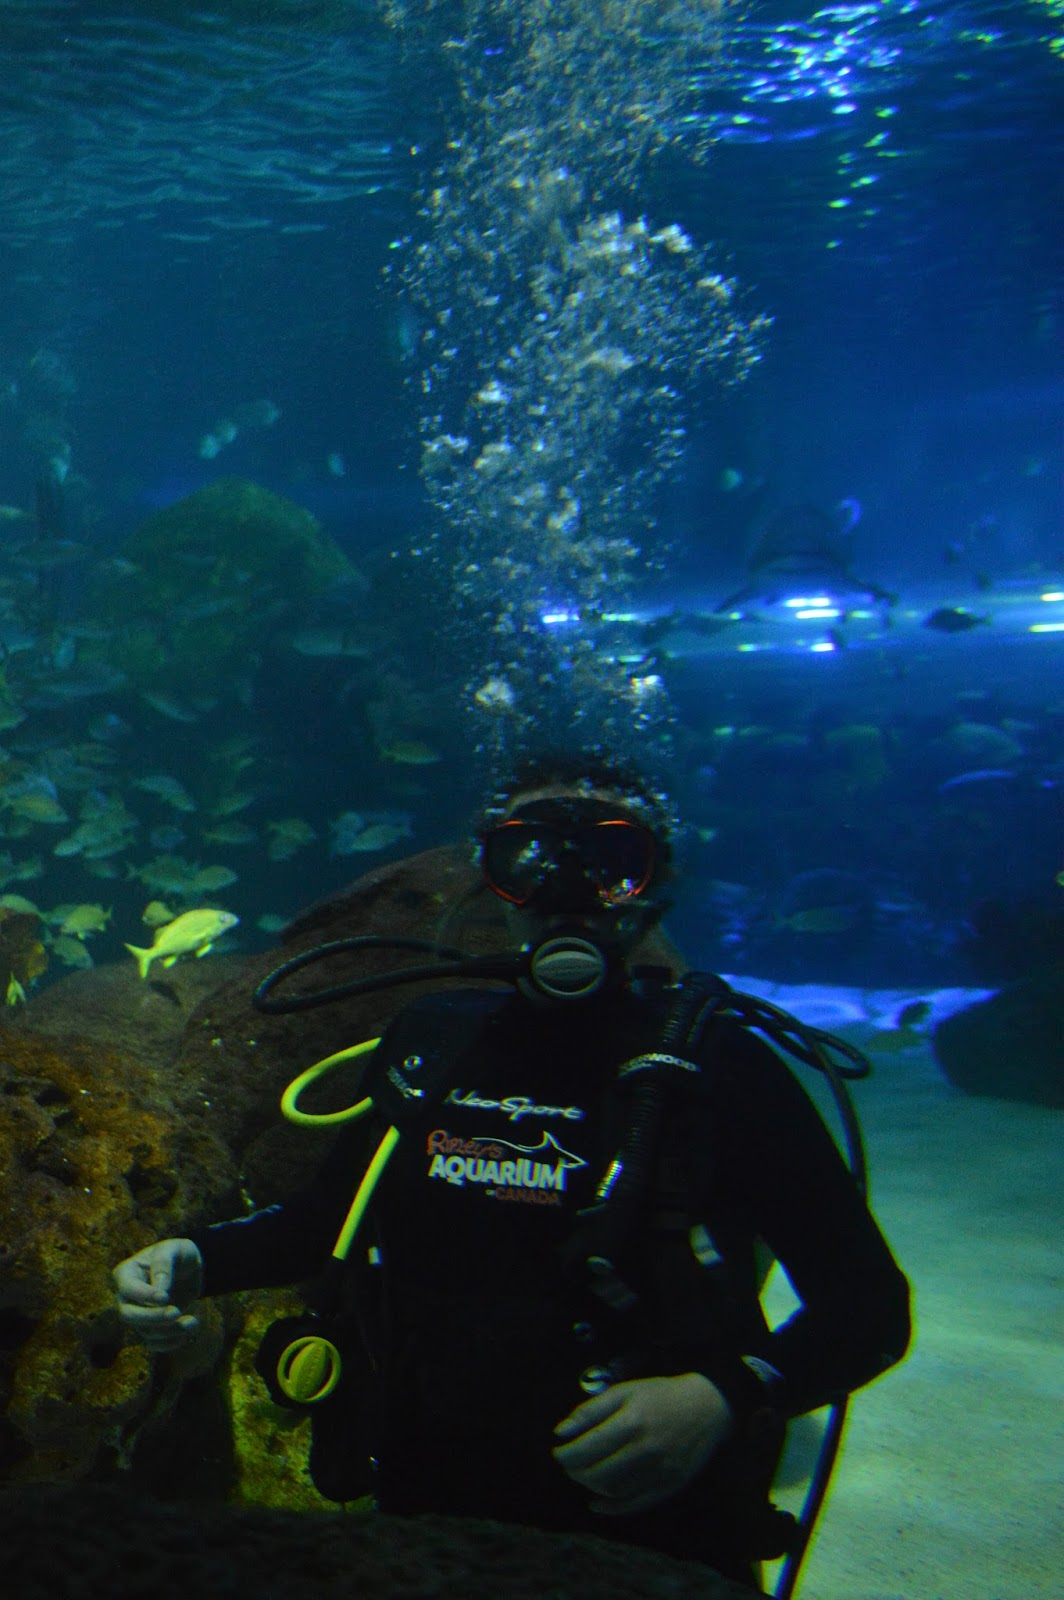 Discovery Dive at Ripley's Aquarium of Canada in Toronto, Ontario